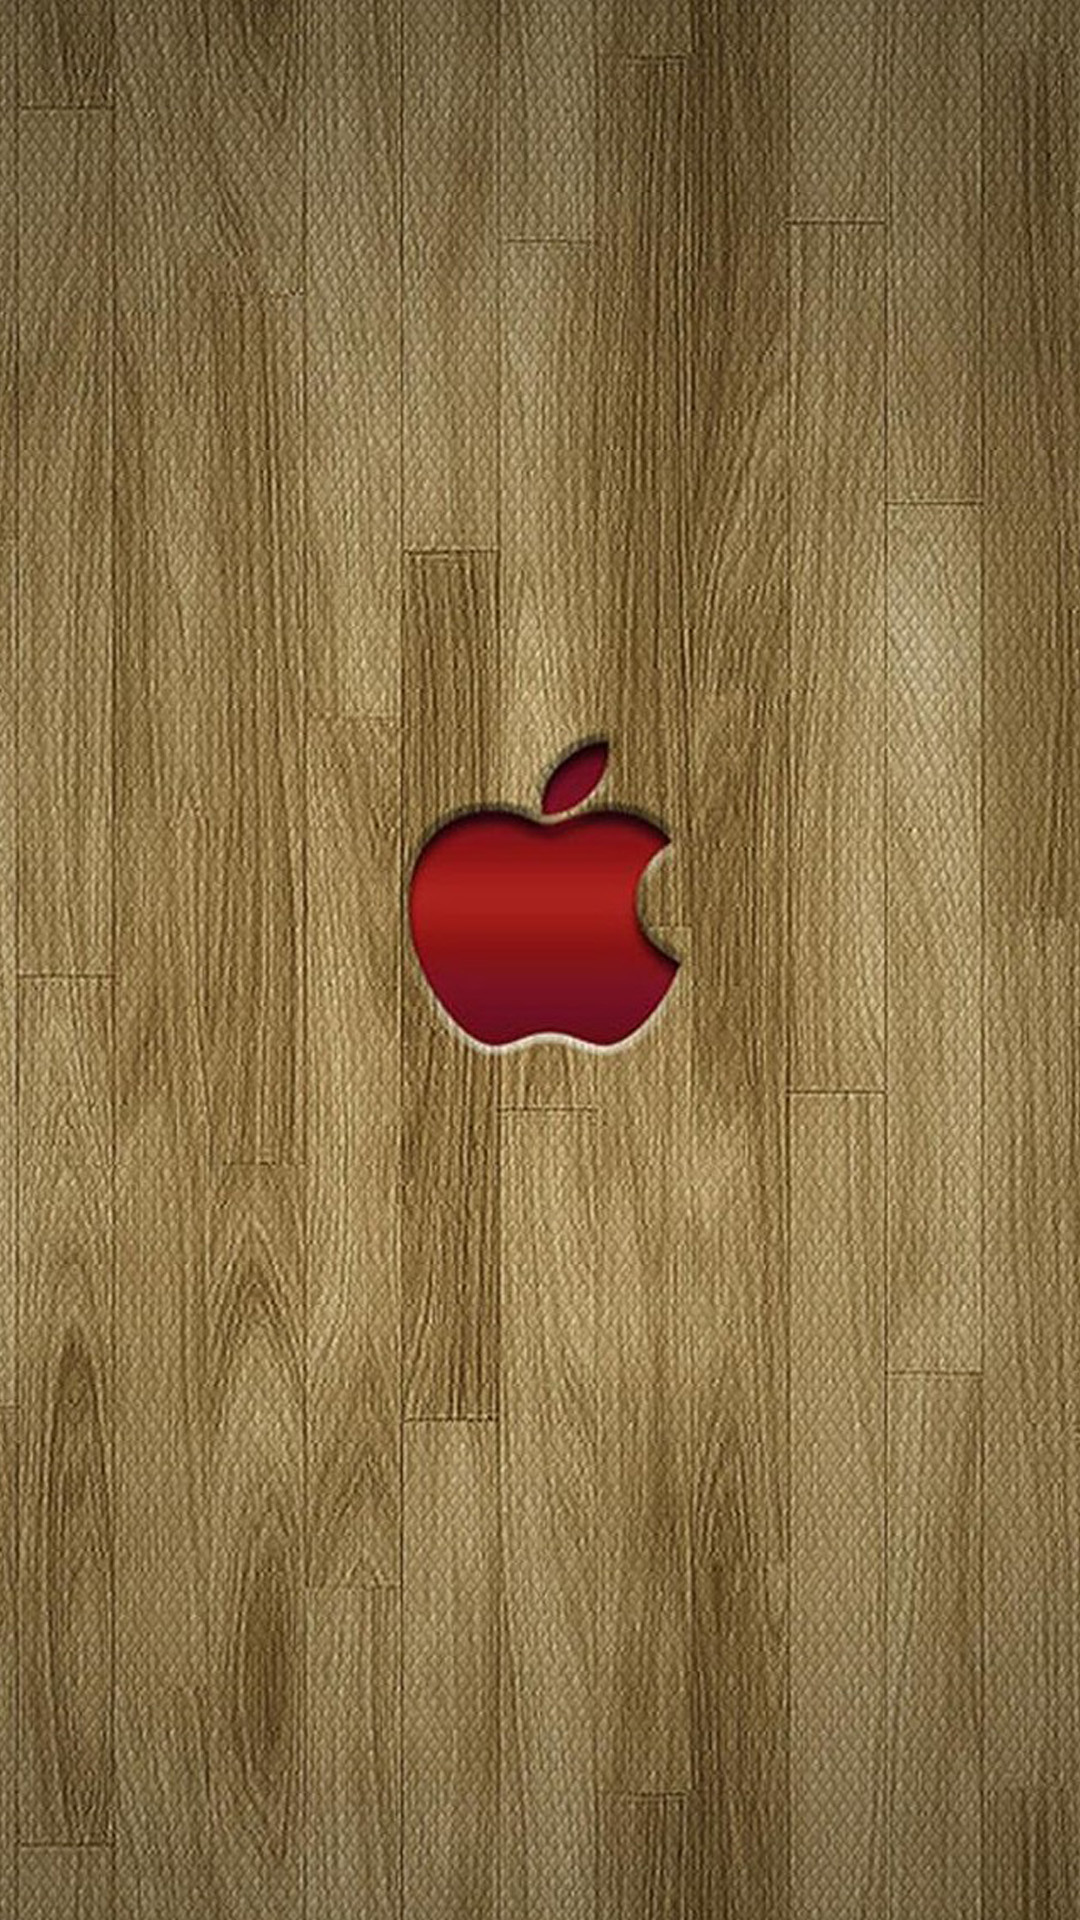 apple iphone wallpapers (32)